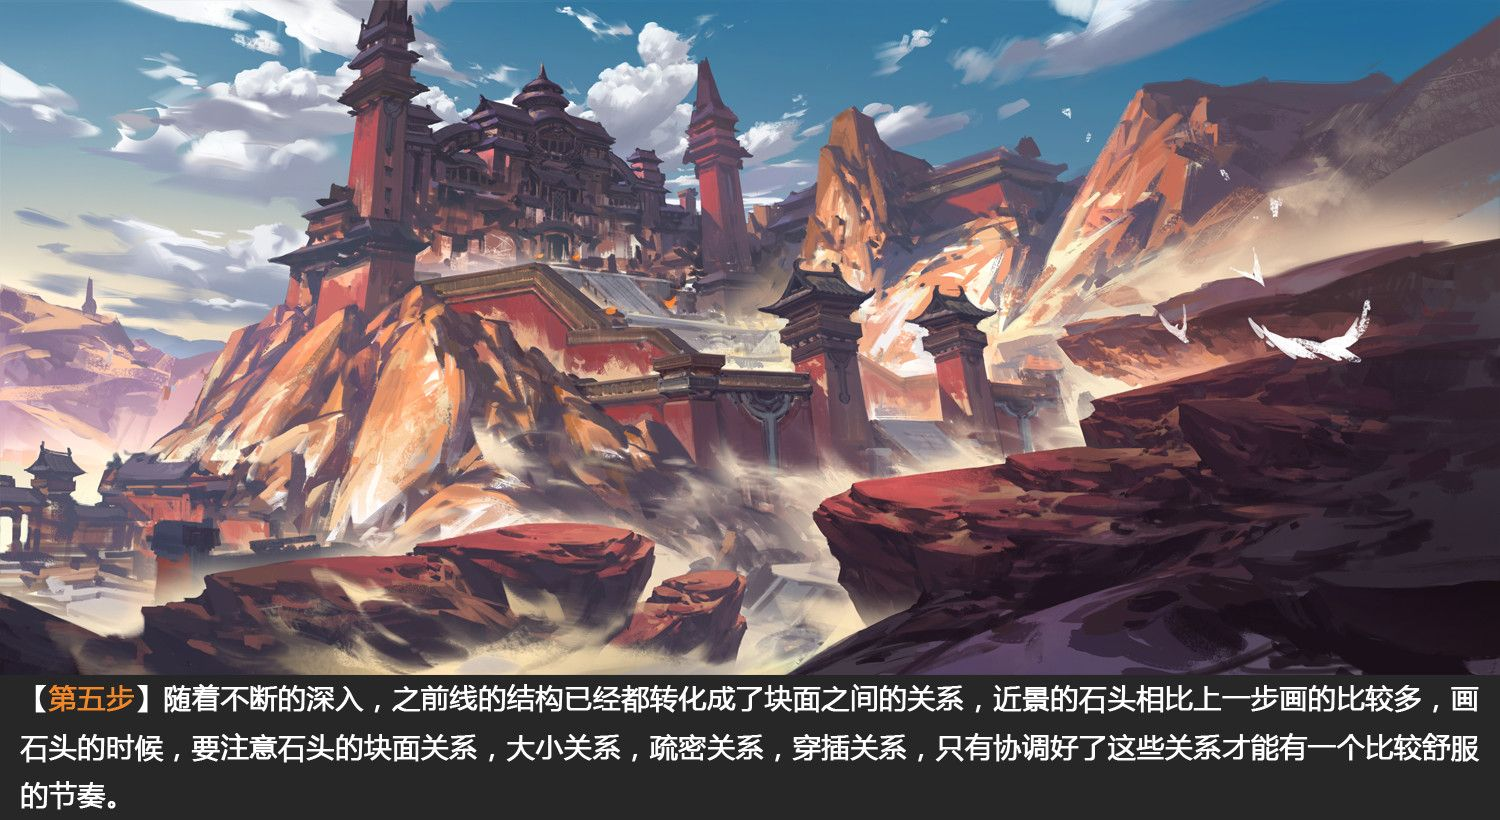 ArtStation - Painting process, G liulian